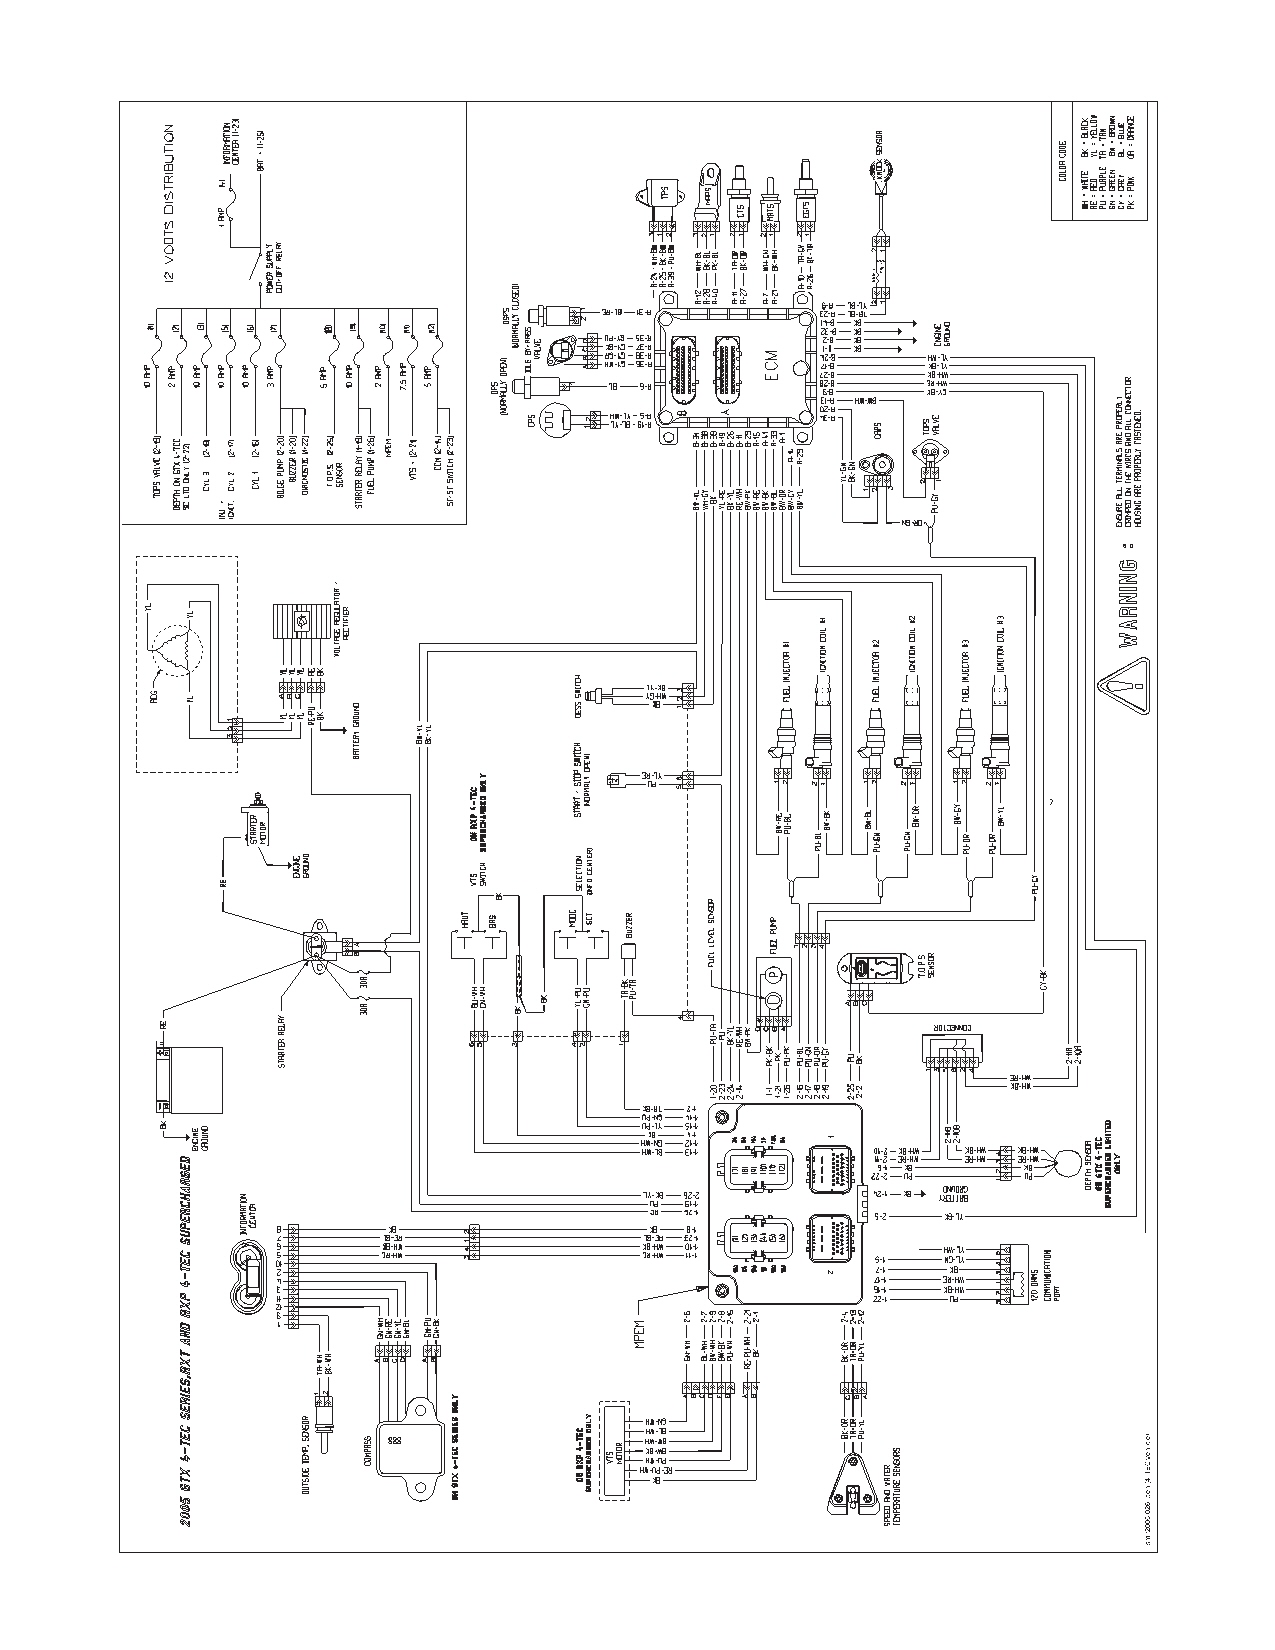 2006 Sea Doo Engine Diagram Free Wiring For You Ski Diagrams Need 2005 Rxp New Engines